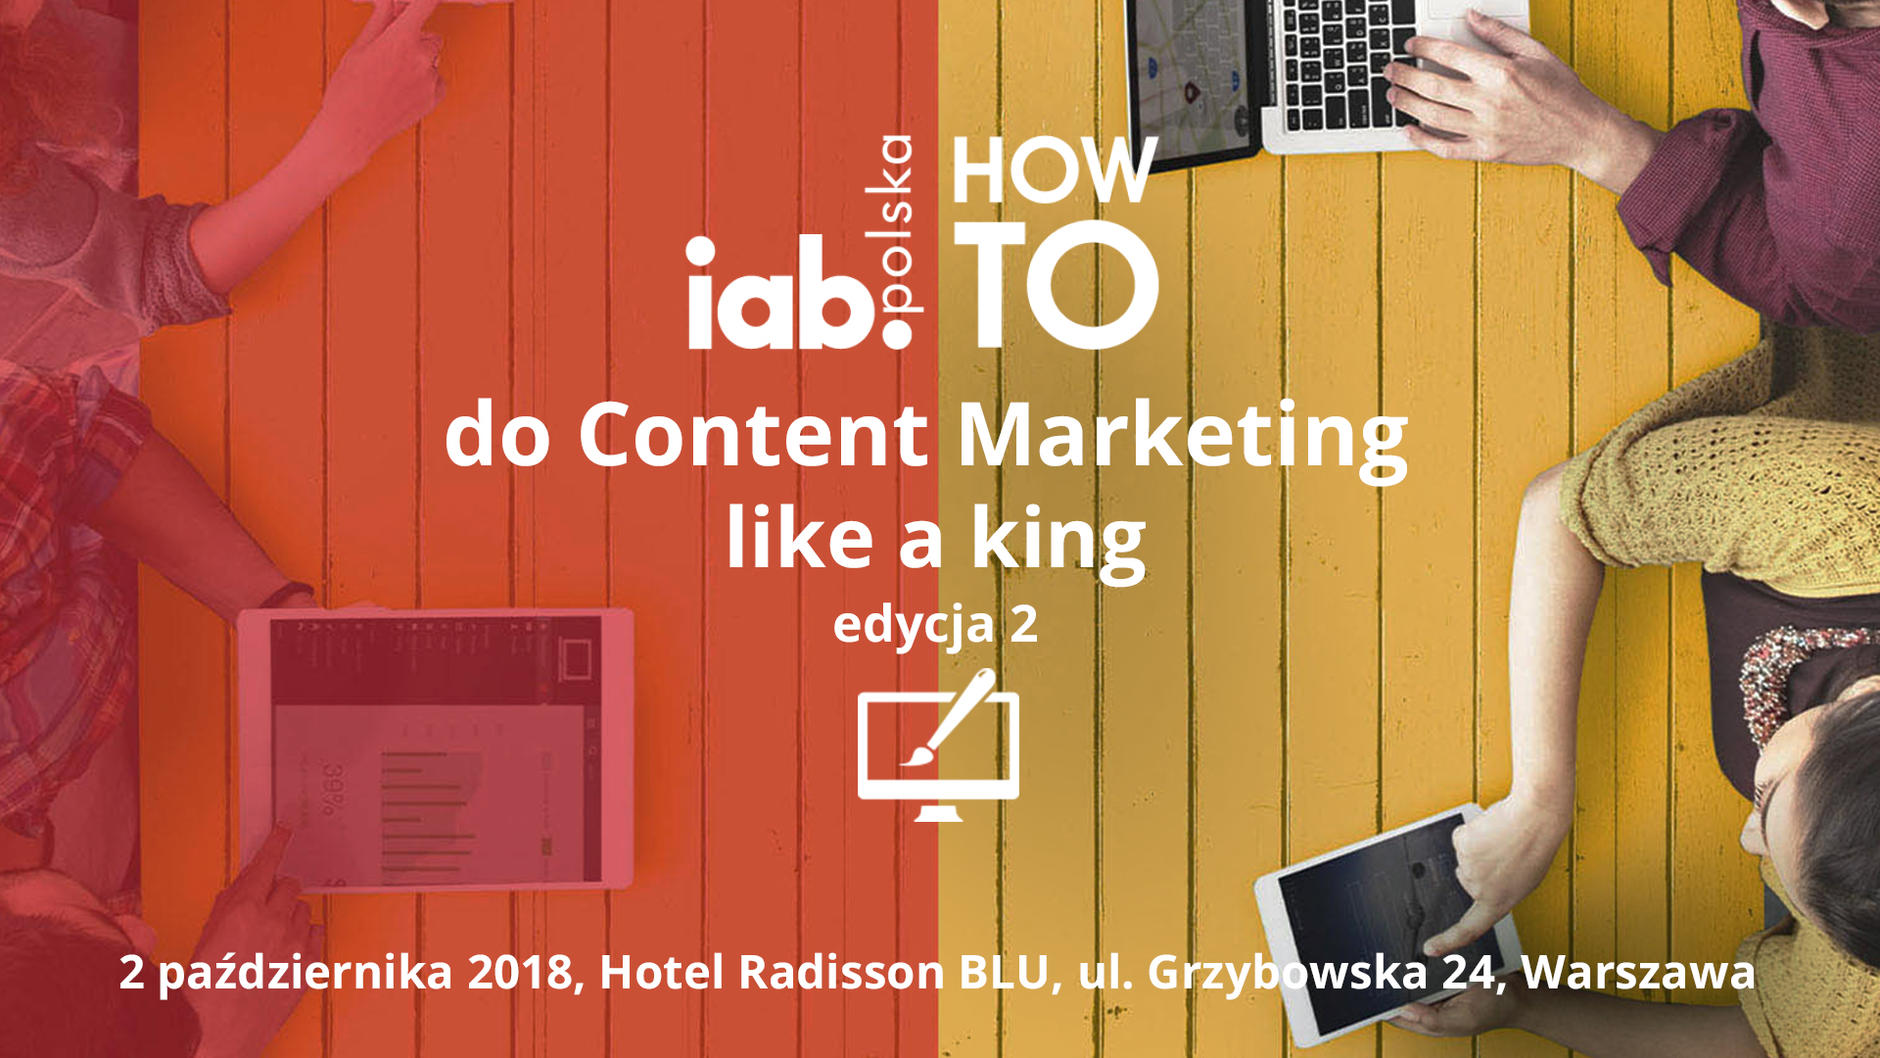 IAB HowTo: Do Content Marketing Like a King 2